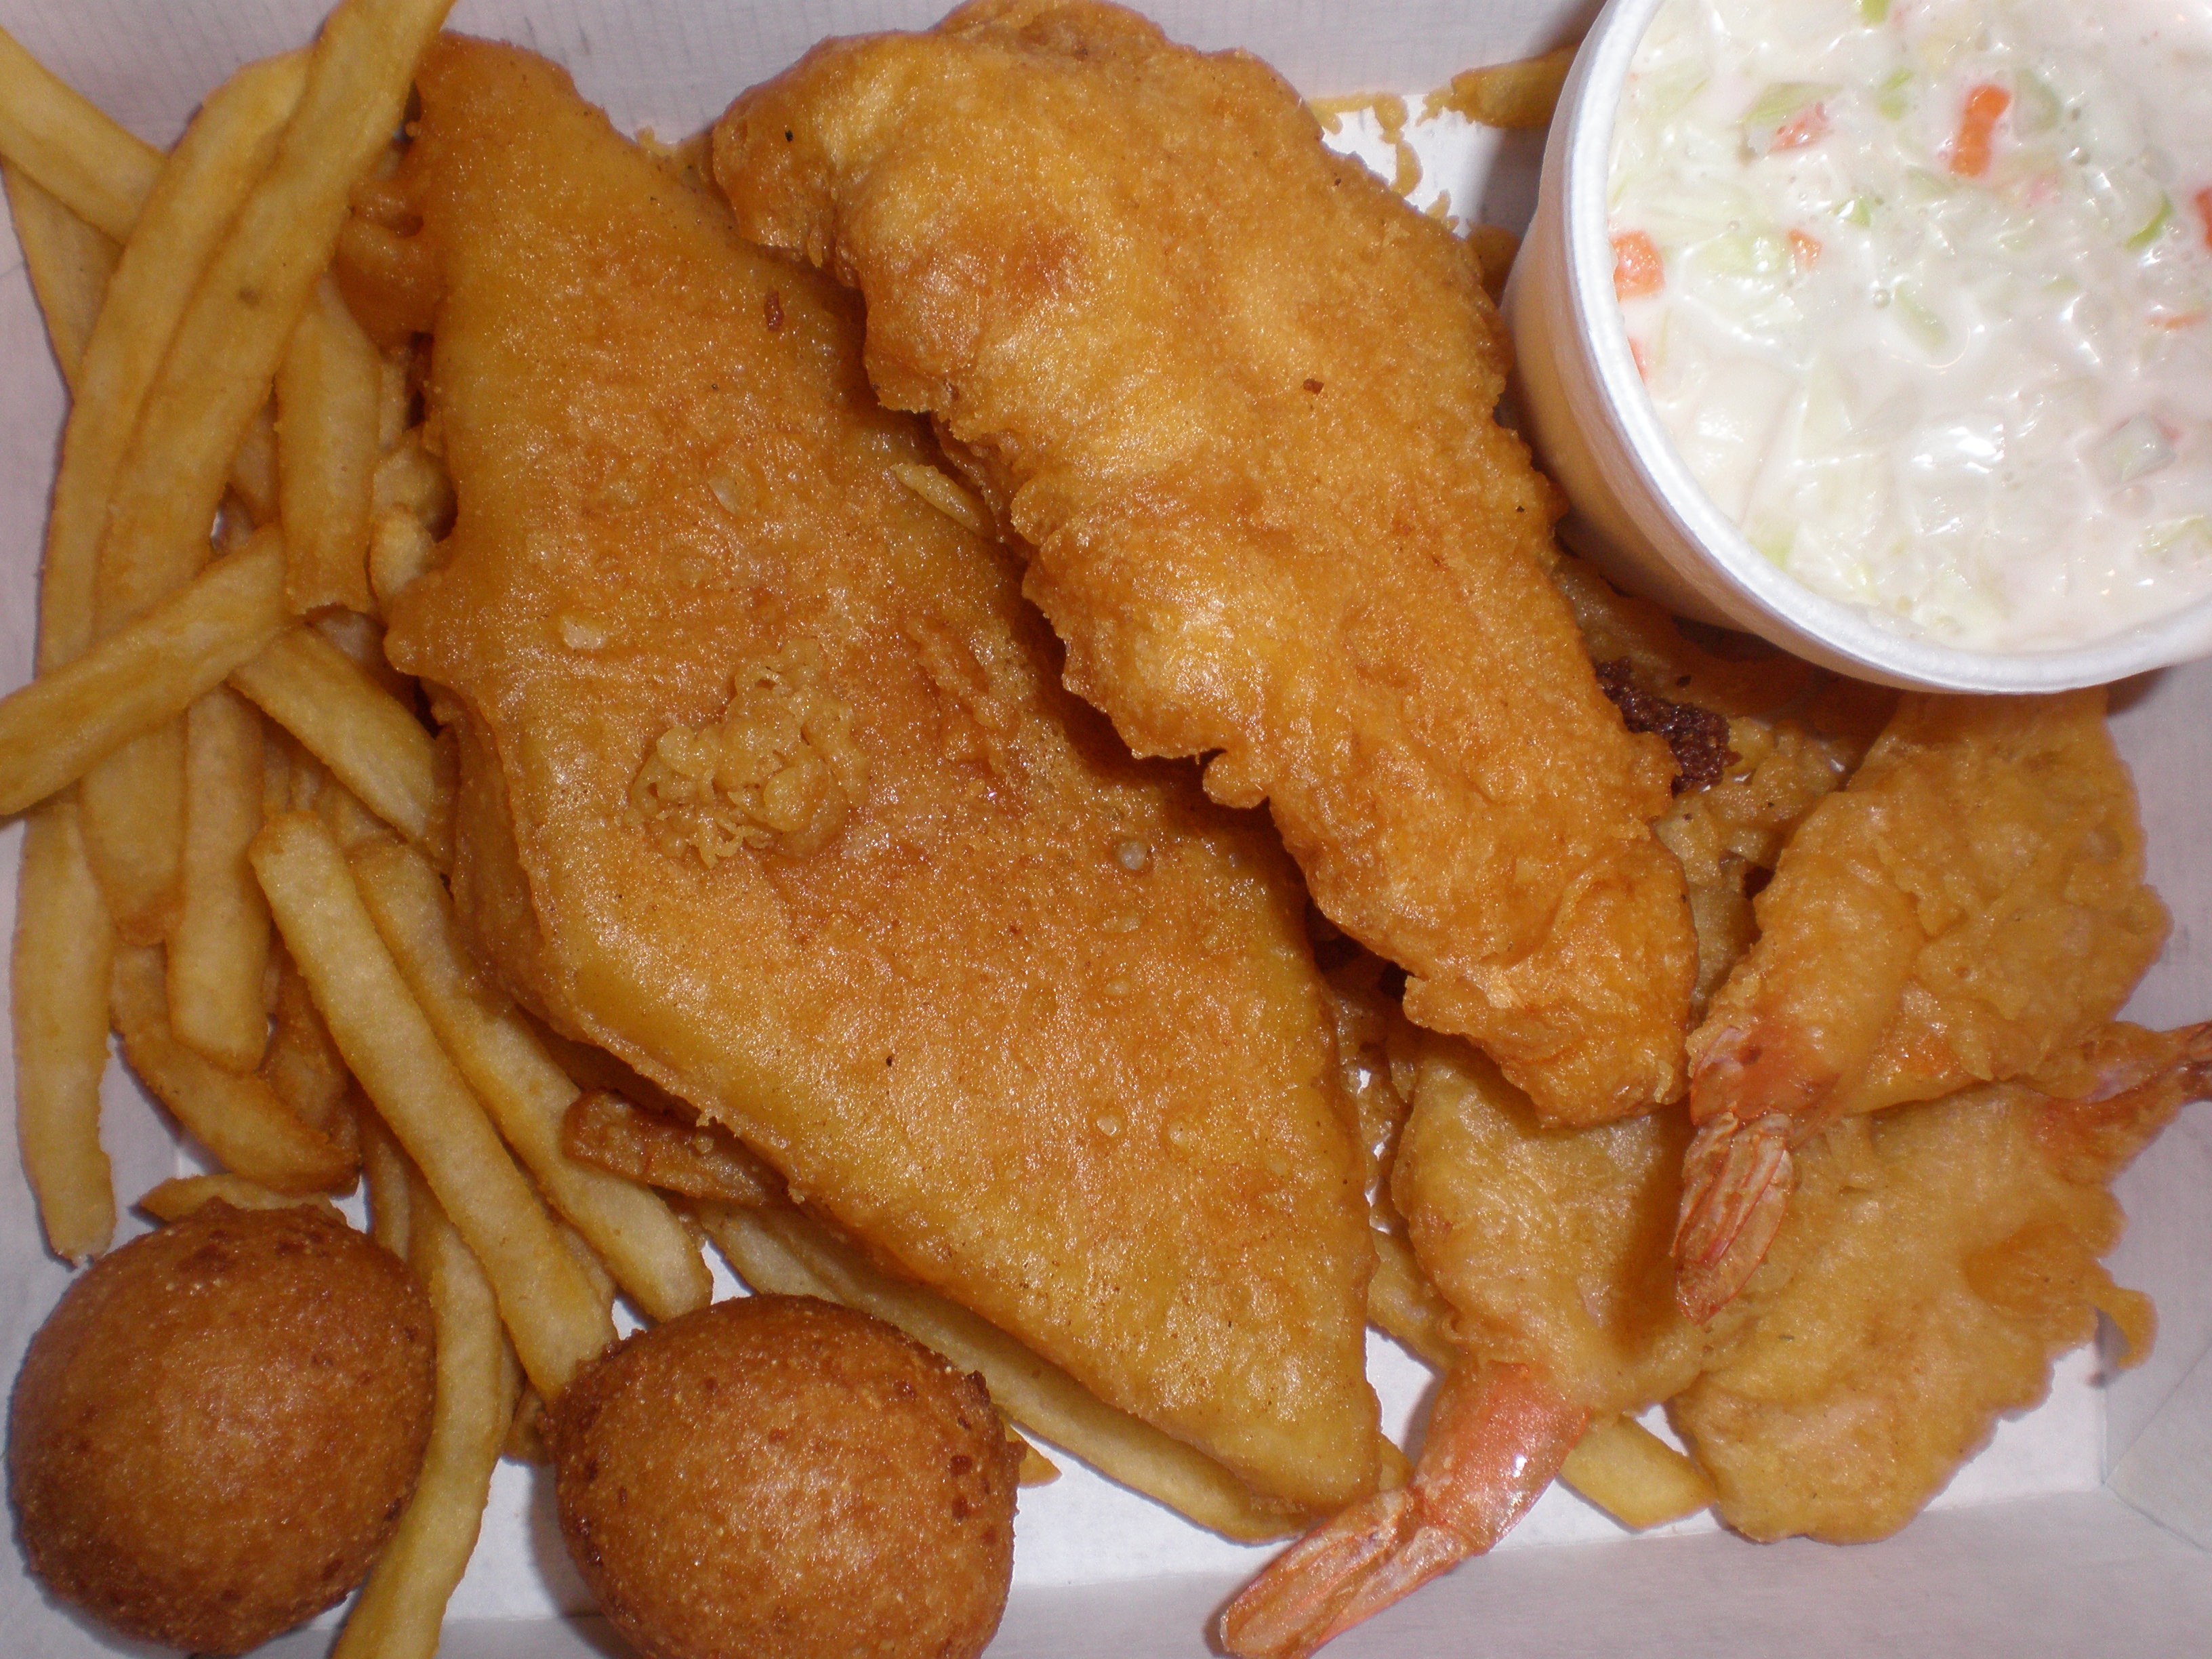 Grains more are trans fats shrinking your brain for Long john silvers fish